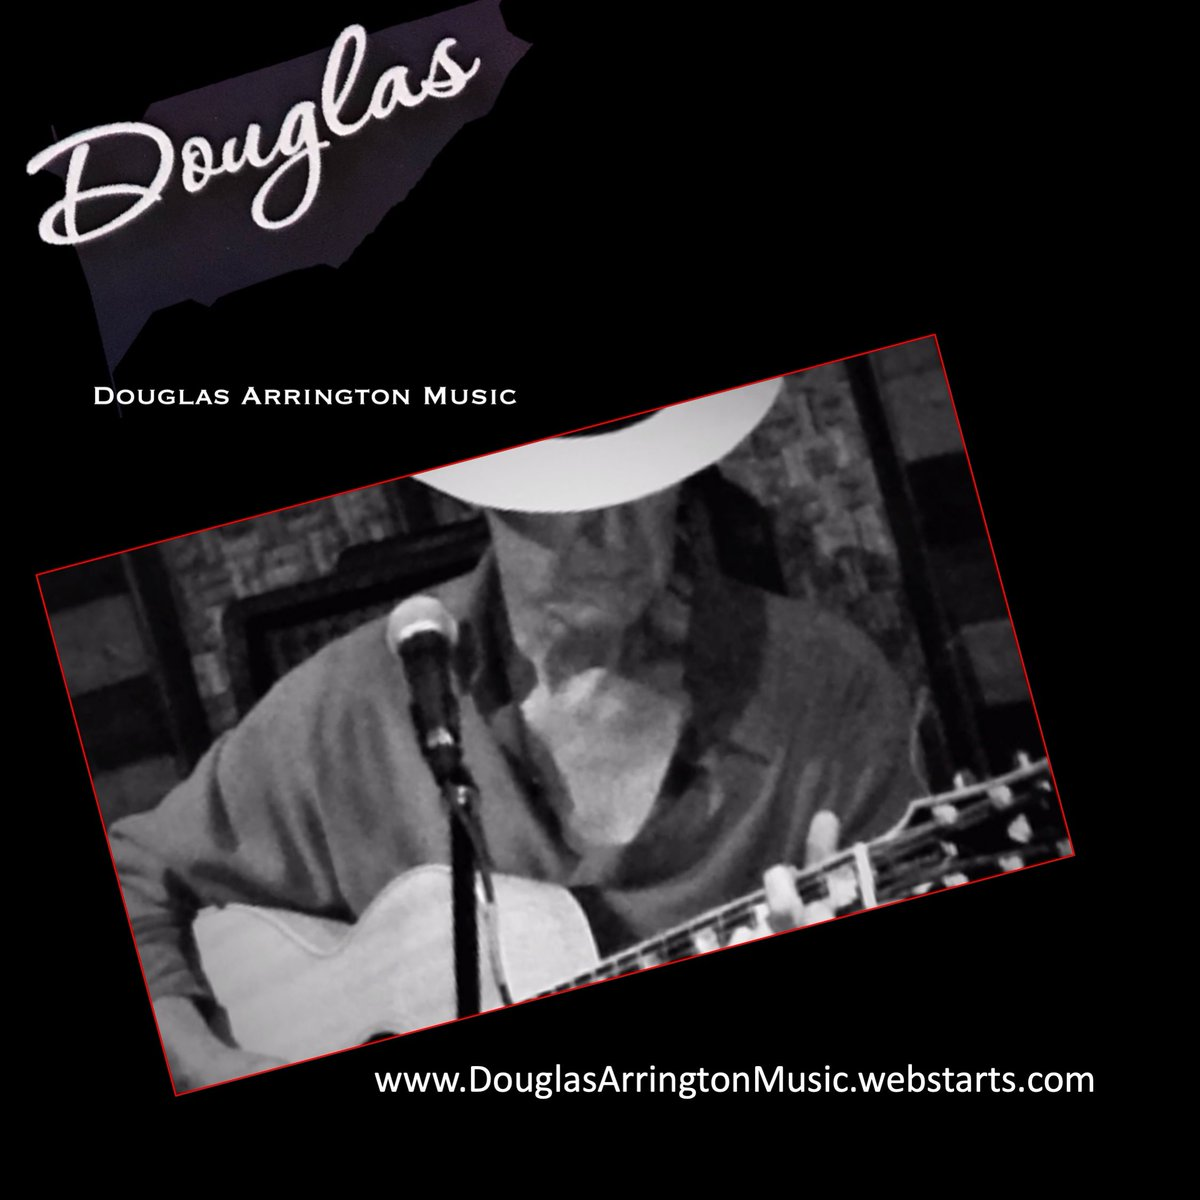 """https://buff.ly/32aHHQD  #Entertainer DOUGLAS ARRINGTON is joined by John Gray & Gerry O'Hare in #Tribute: """"One Of Those Days"""" by #EilenJewell on the 'Sea Of #Tears' #album   #Cover recorded in #StAugustine #Florida  #Music #IndieMusician #Ballads #LoveSongs  #sadsongs pic.twitter.com/6FUsBiqww0"""